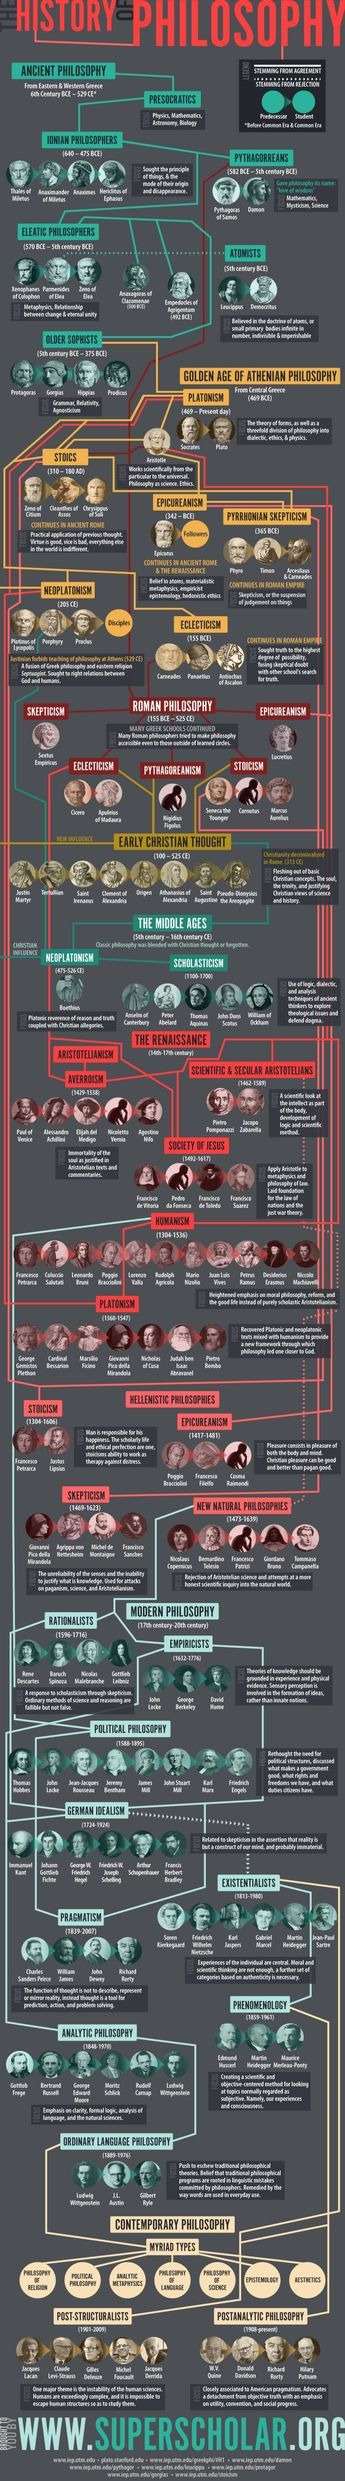 History of Philosophy #infographic #Philosophy #History